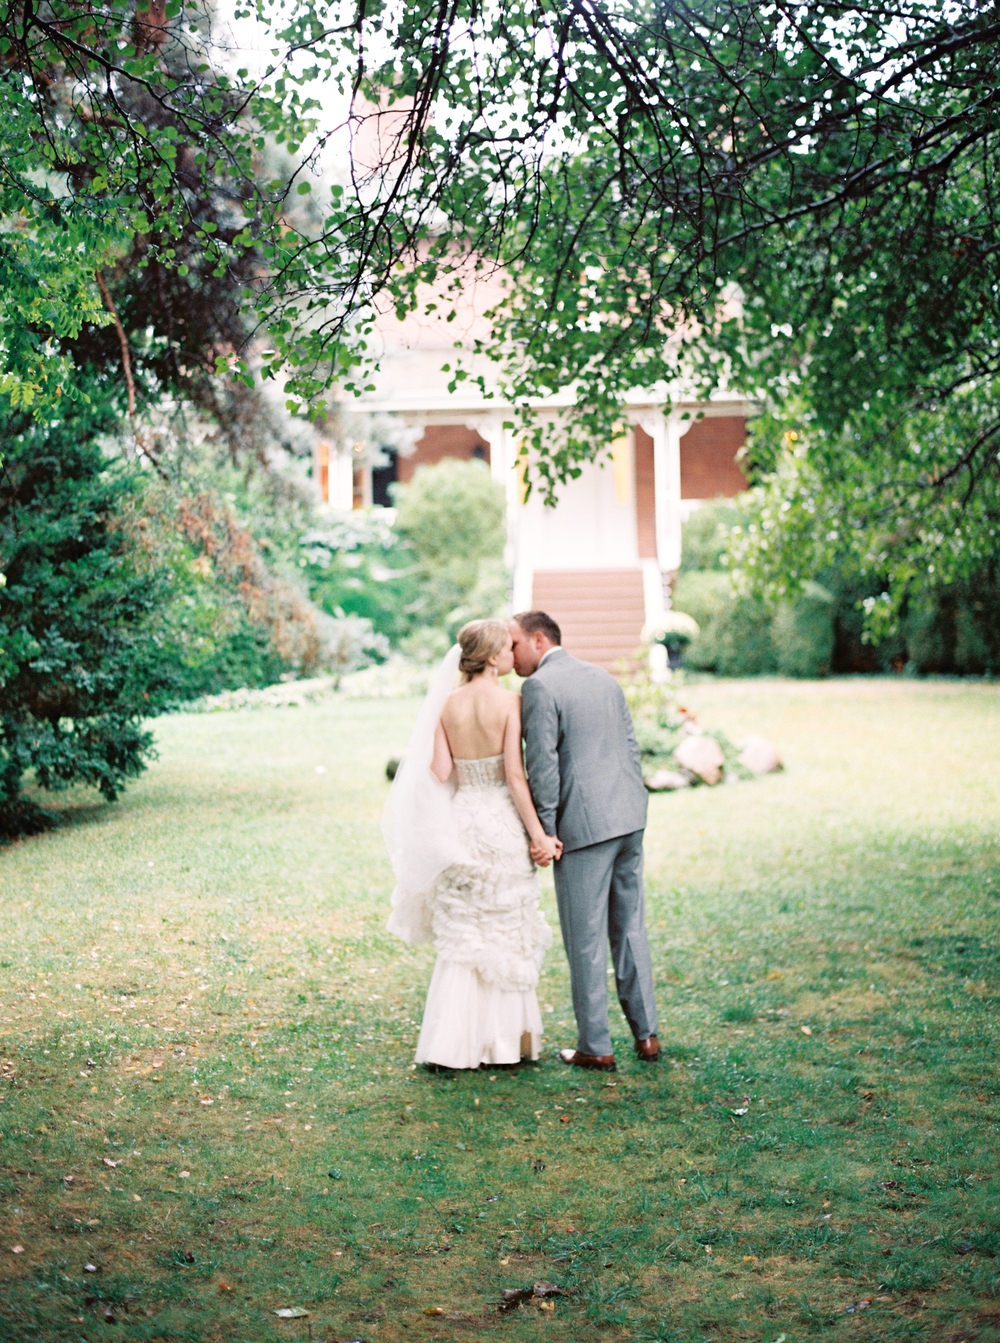 Kurtz-Orchards-Niagara-on-the-Lake-Wedding-photography-by-When-He-Found-Her-072.JPG